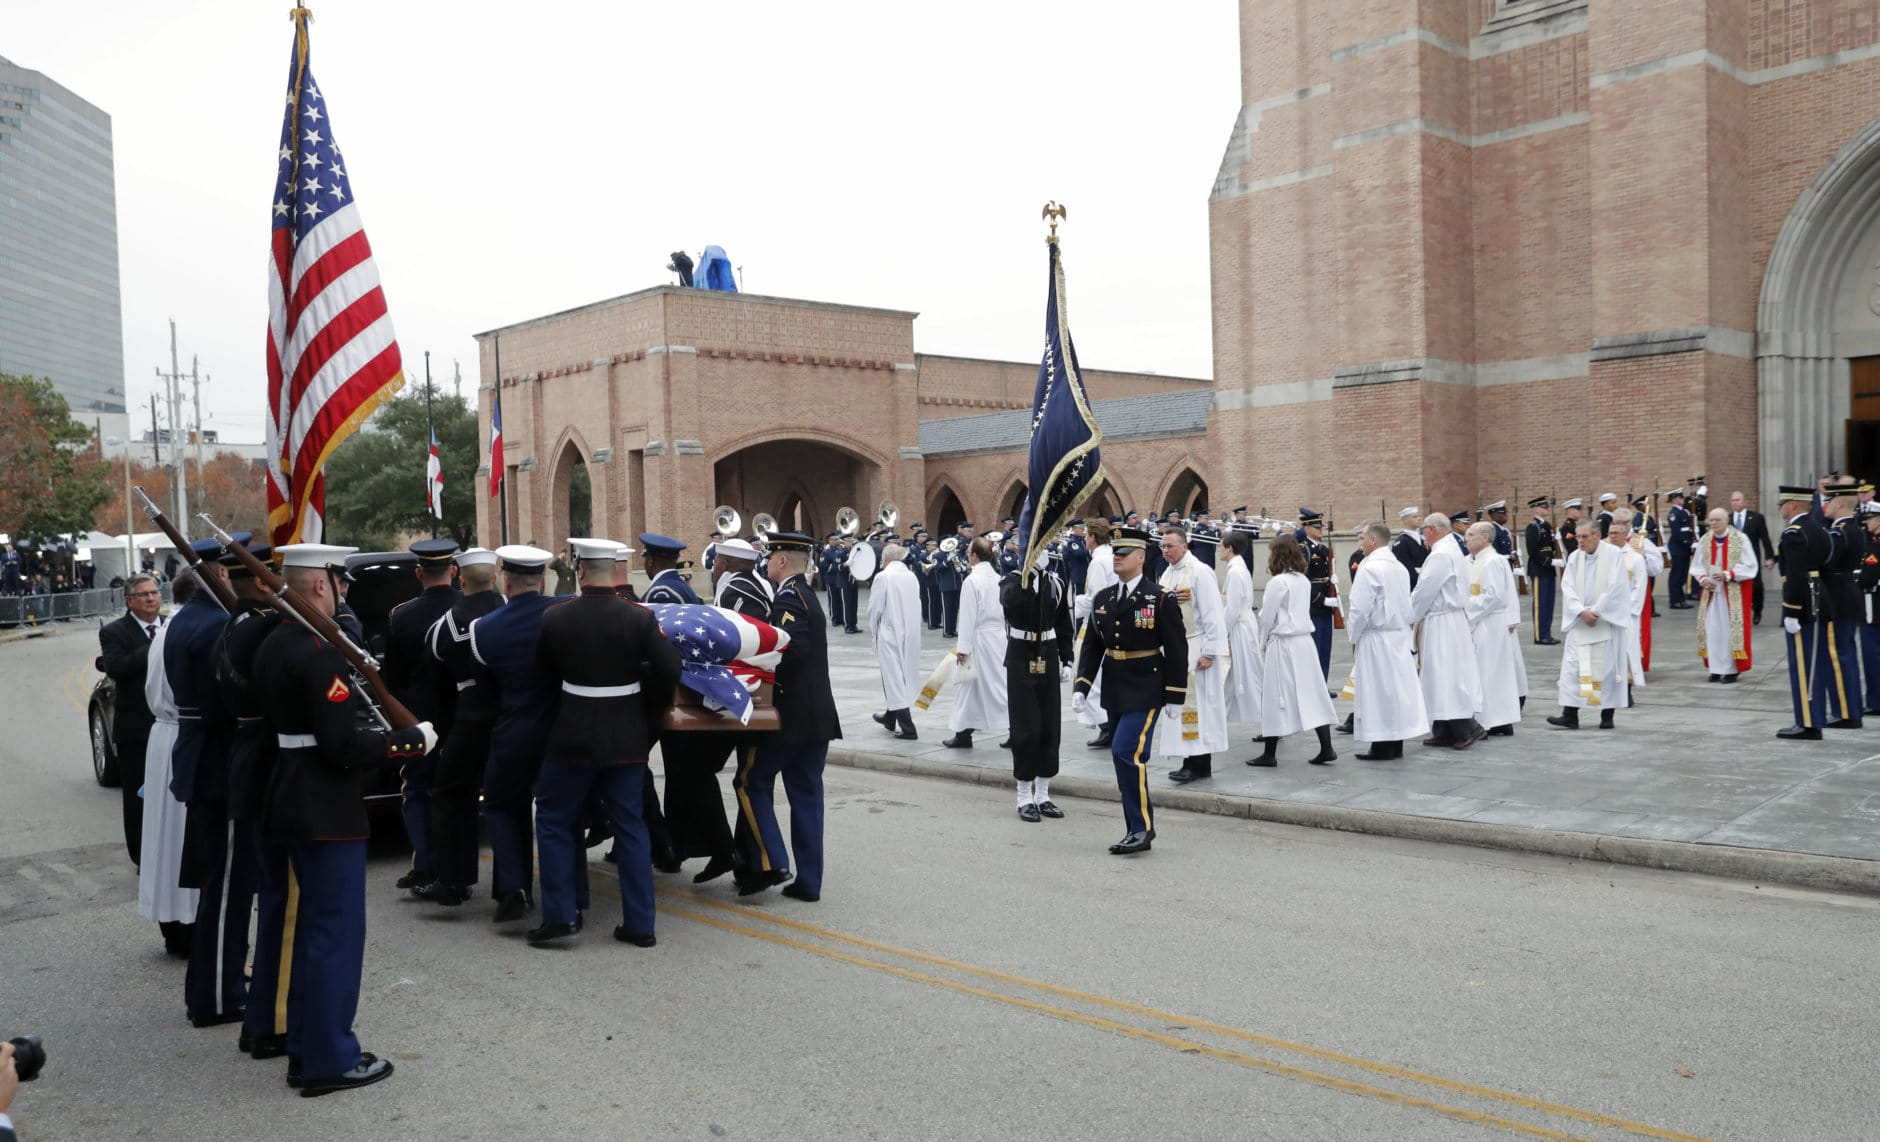 A military honor guard carries the flag-draped casket of former President George H.W. Bush to a hearse following his funeral service at St. Martin's Episcopal Church Thursday, Dec. 6, 2018, in Houston. (AP Photo/Gerald Herbert)